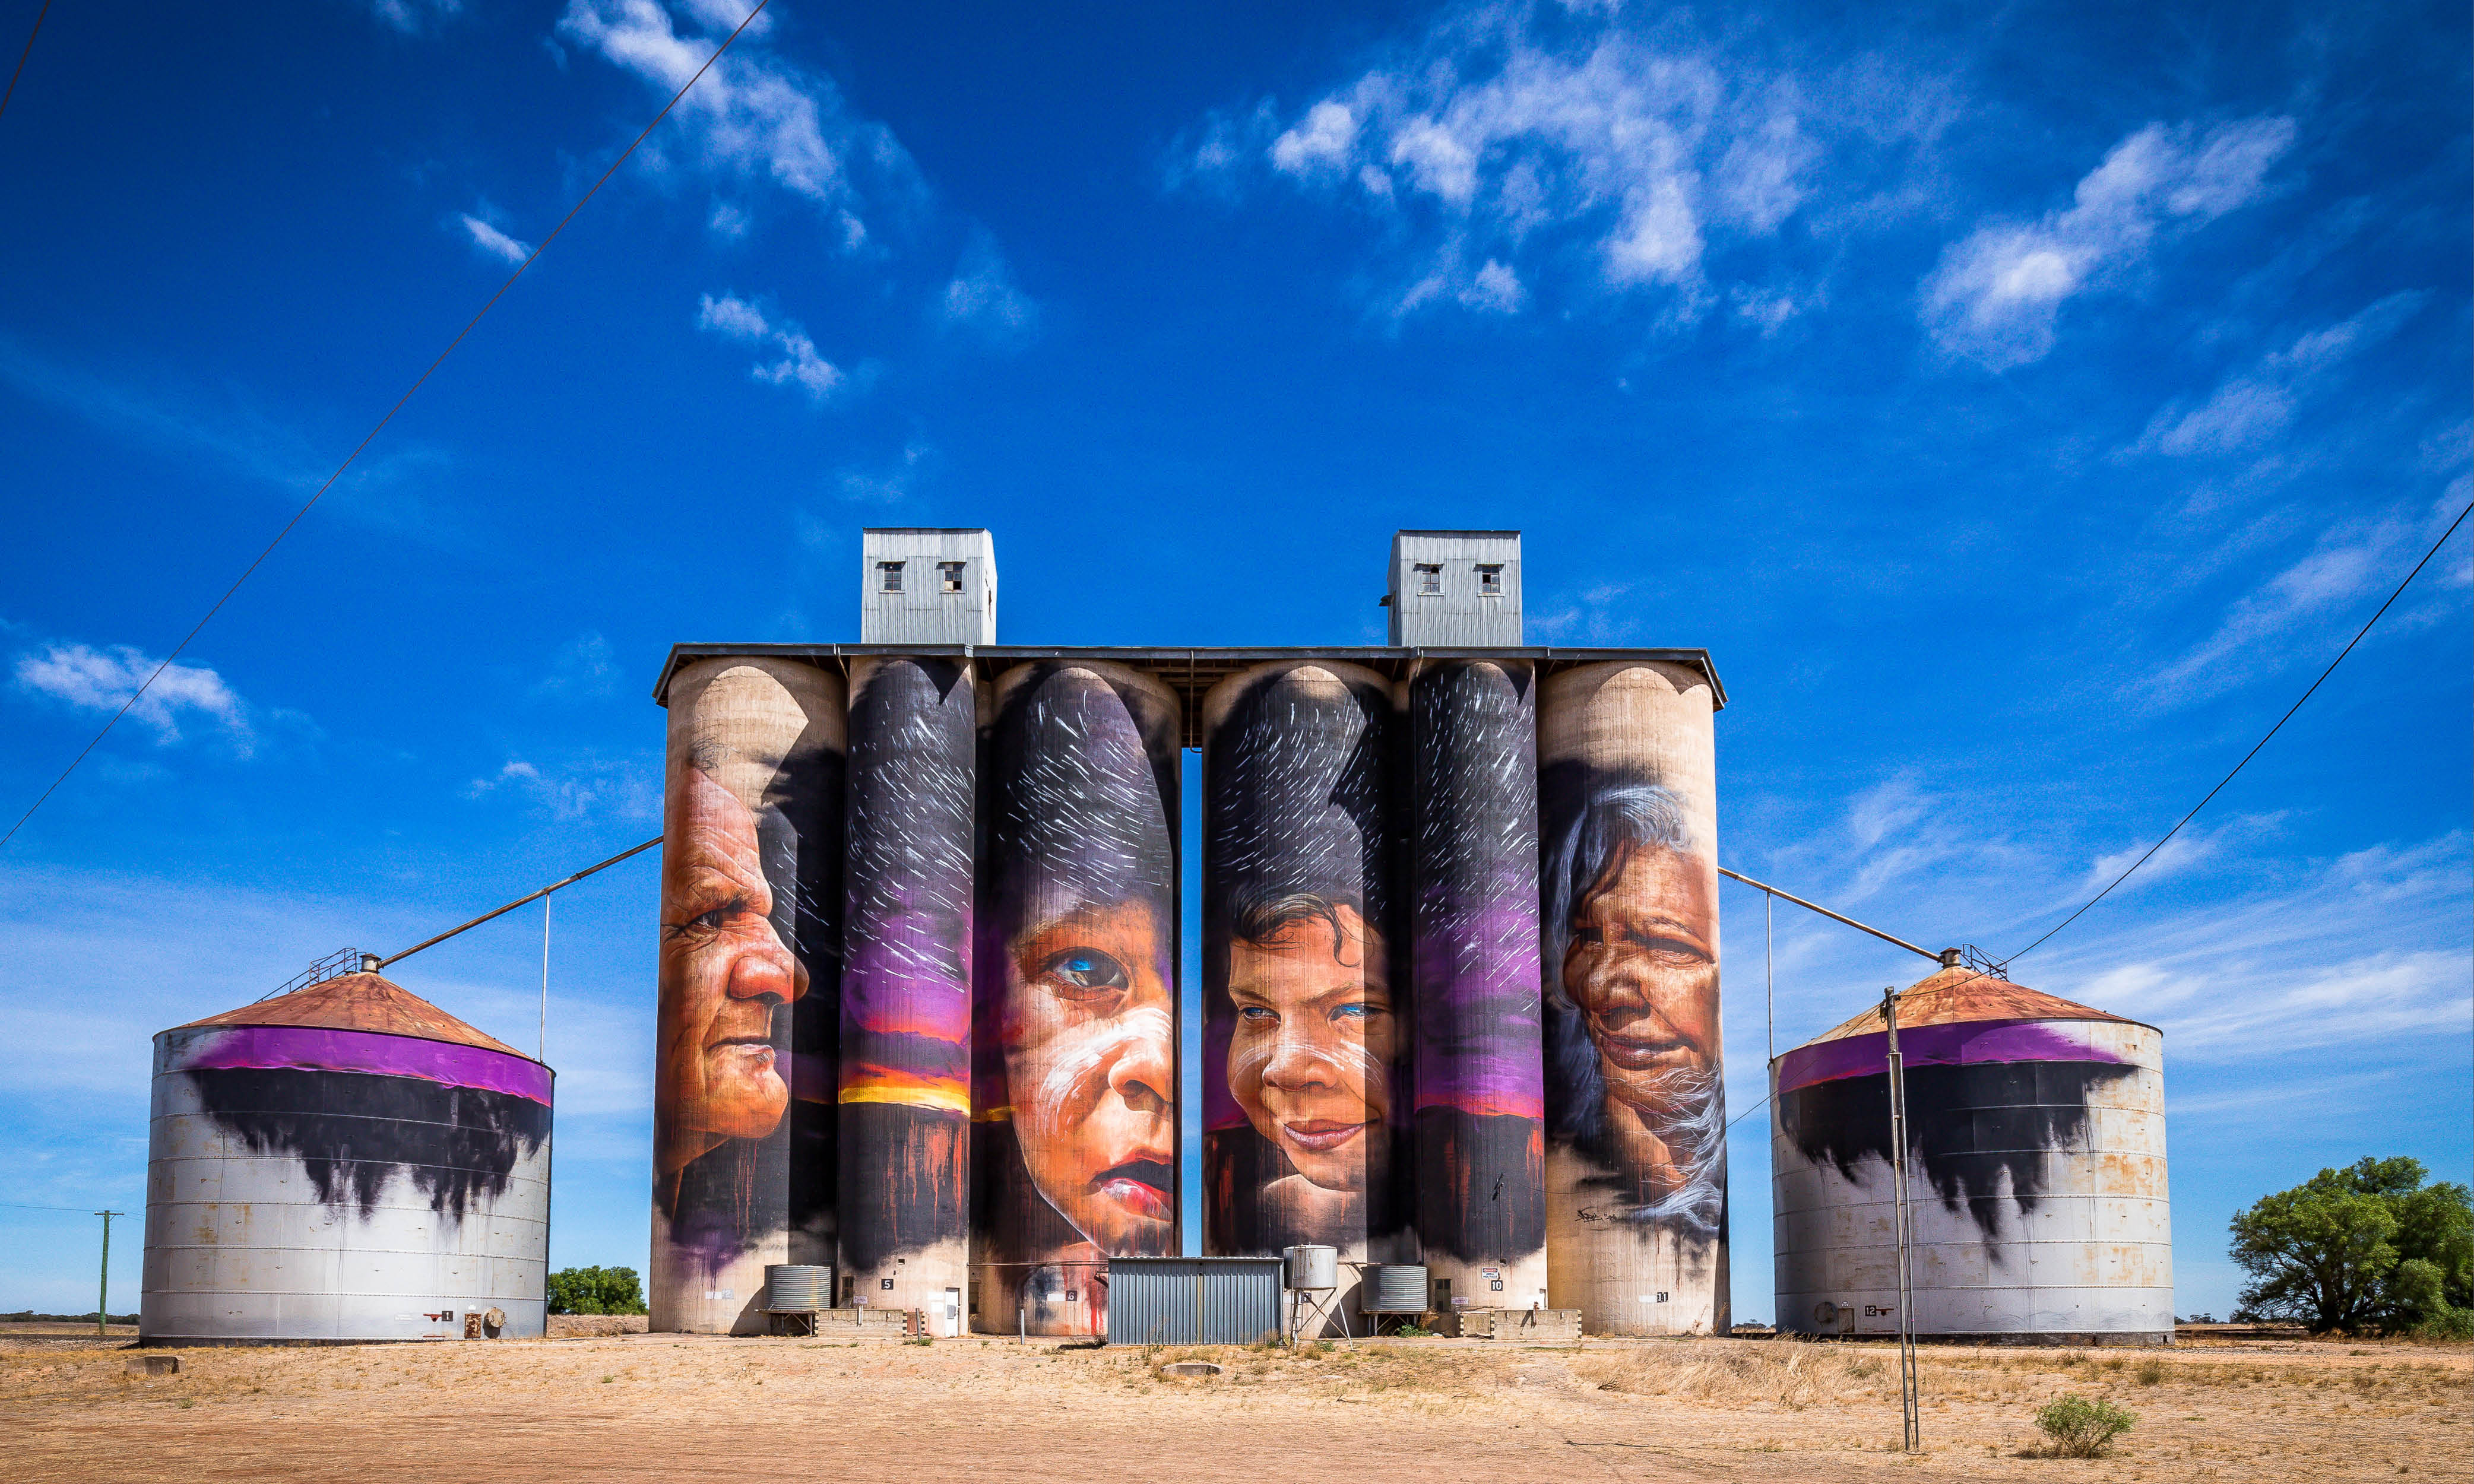 Have you heard? Silo art is all the rage